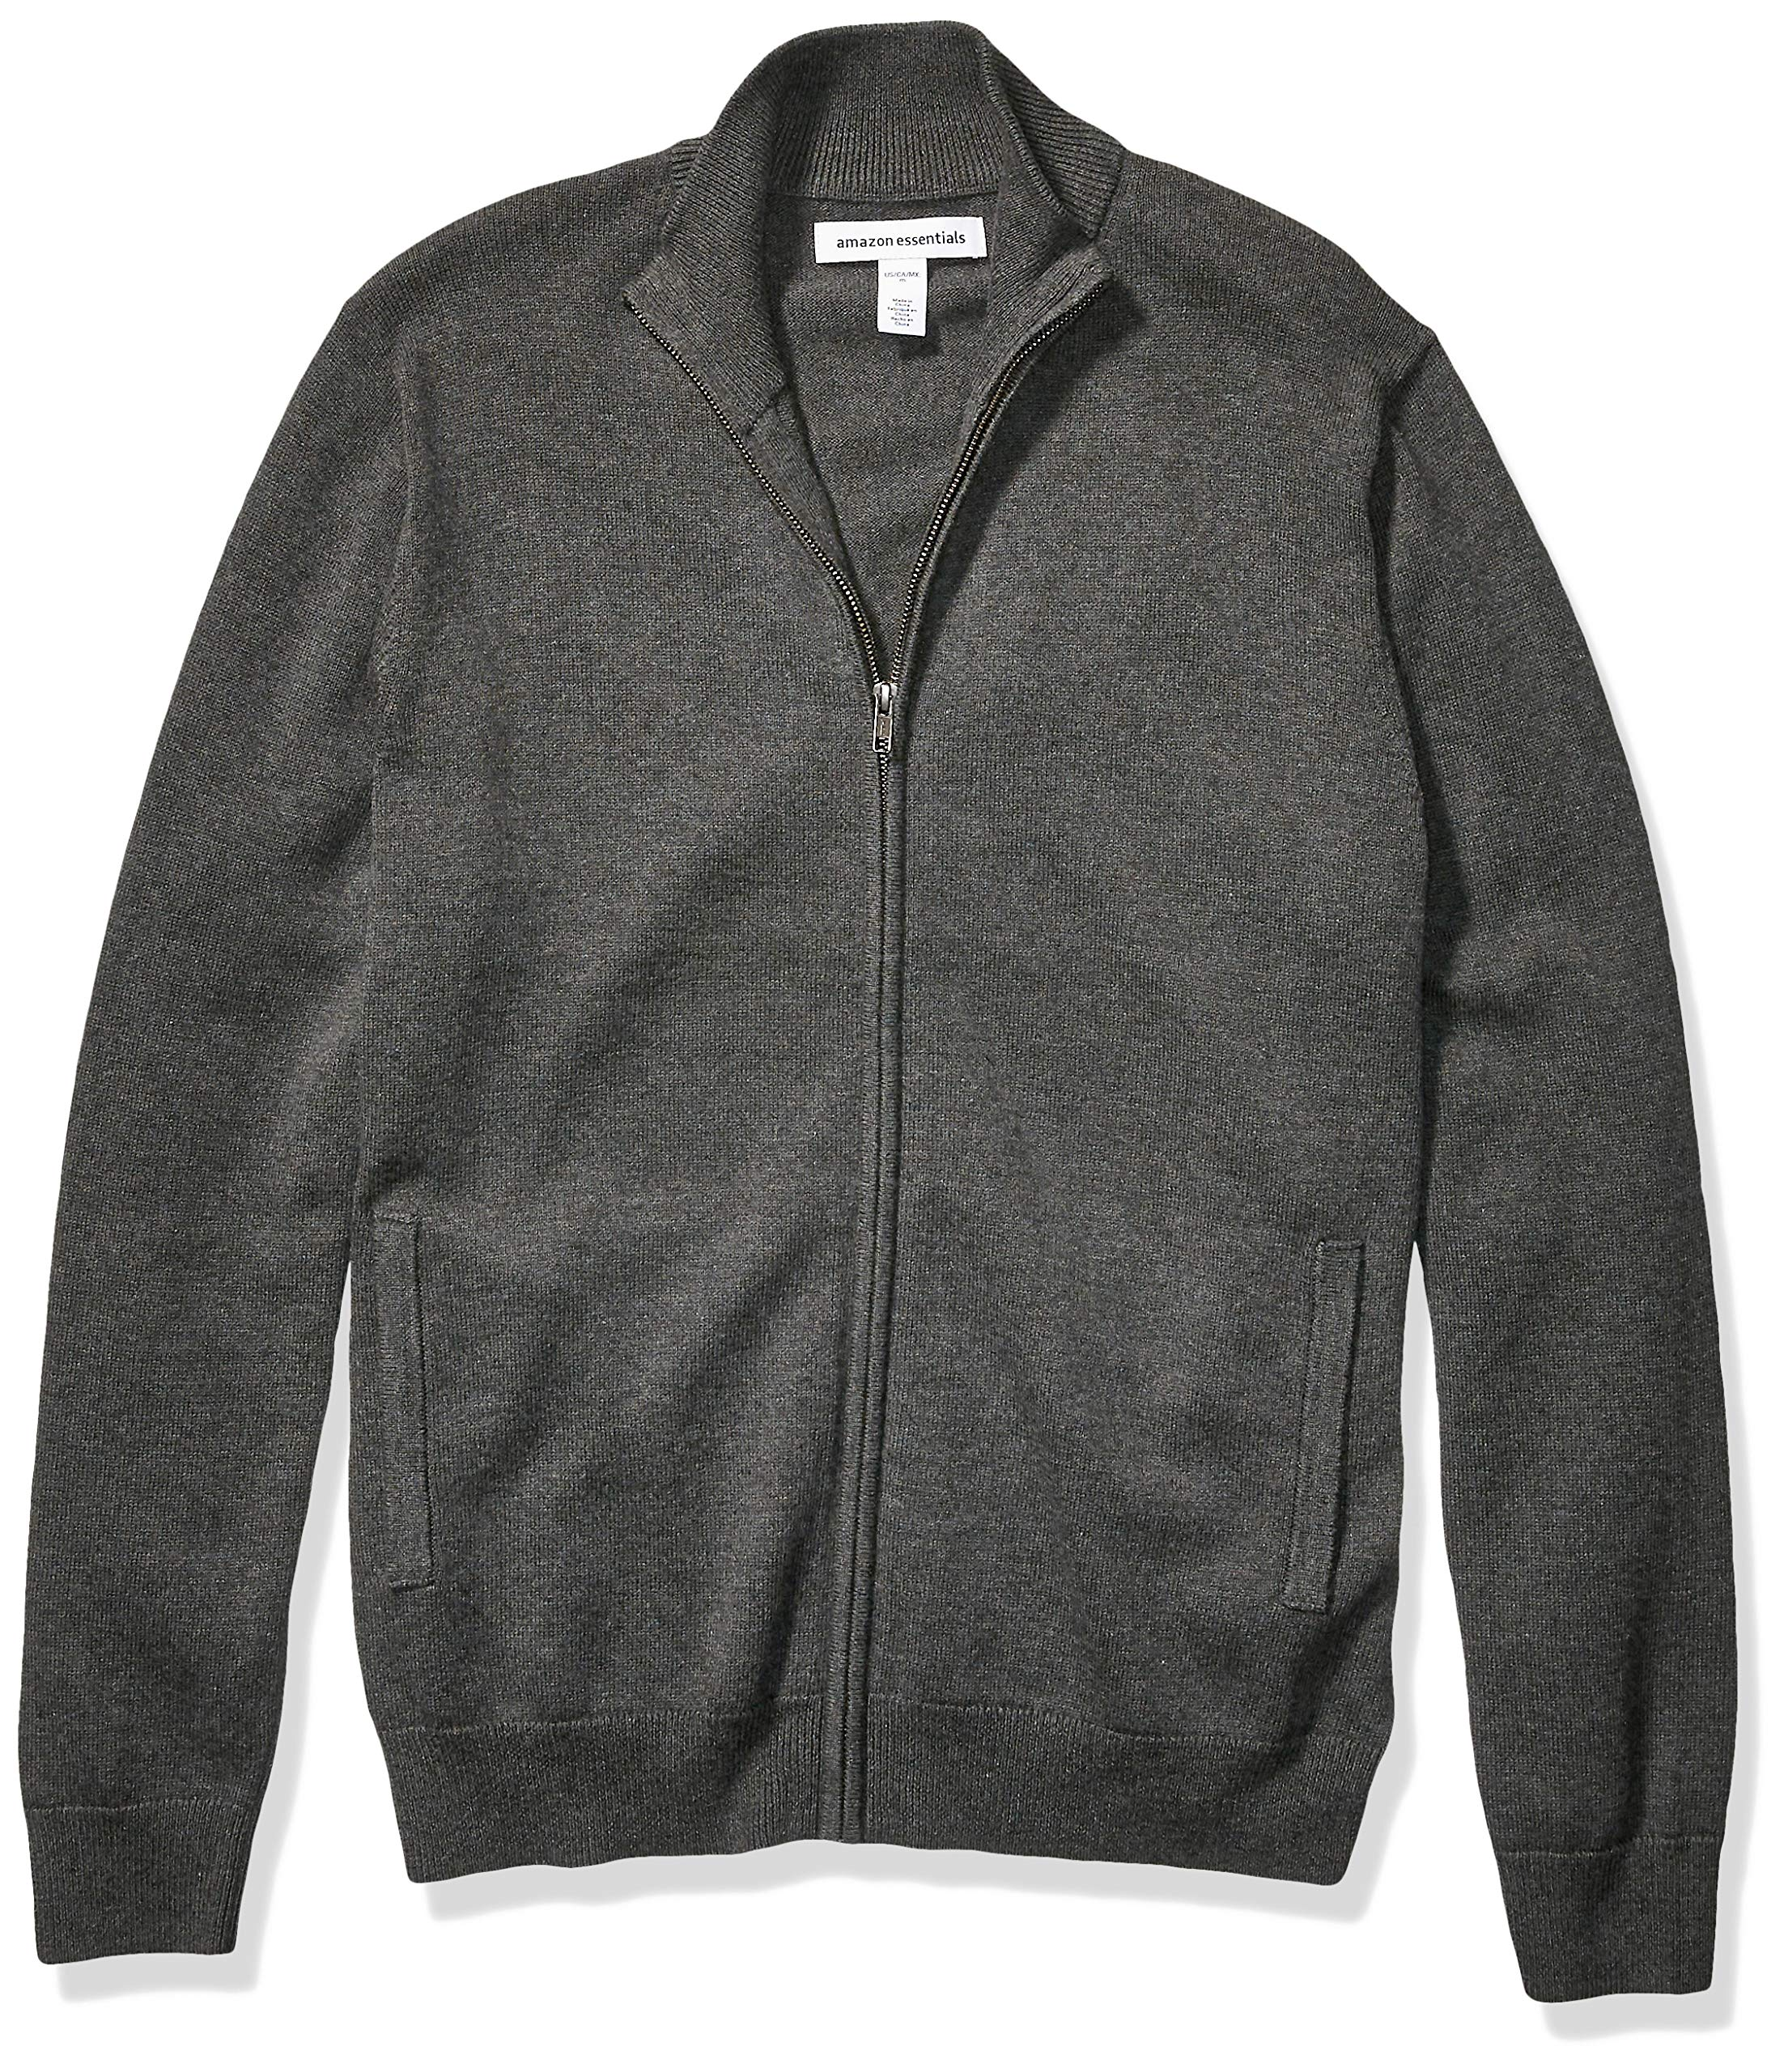 Amazon Essentials Men's Cotton Full-Zip Sweater, Charcoal Heather, X-Large by Amazon Essentials